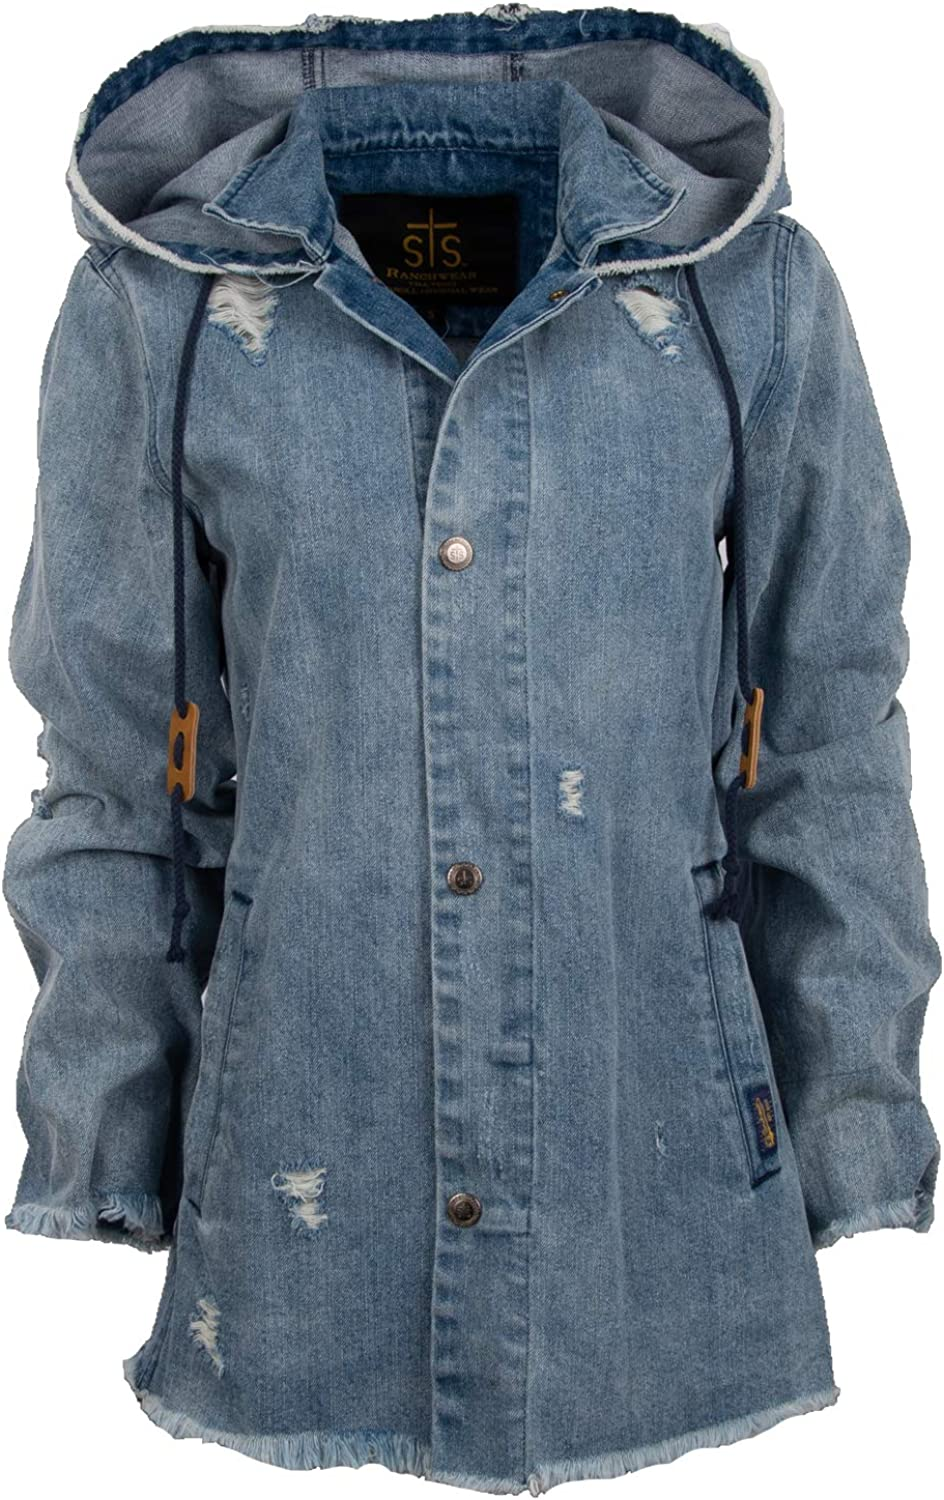 Sts Ranch New popularity Sales for sale Wear Womens Shari STS Jacket Dale